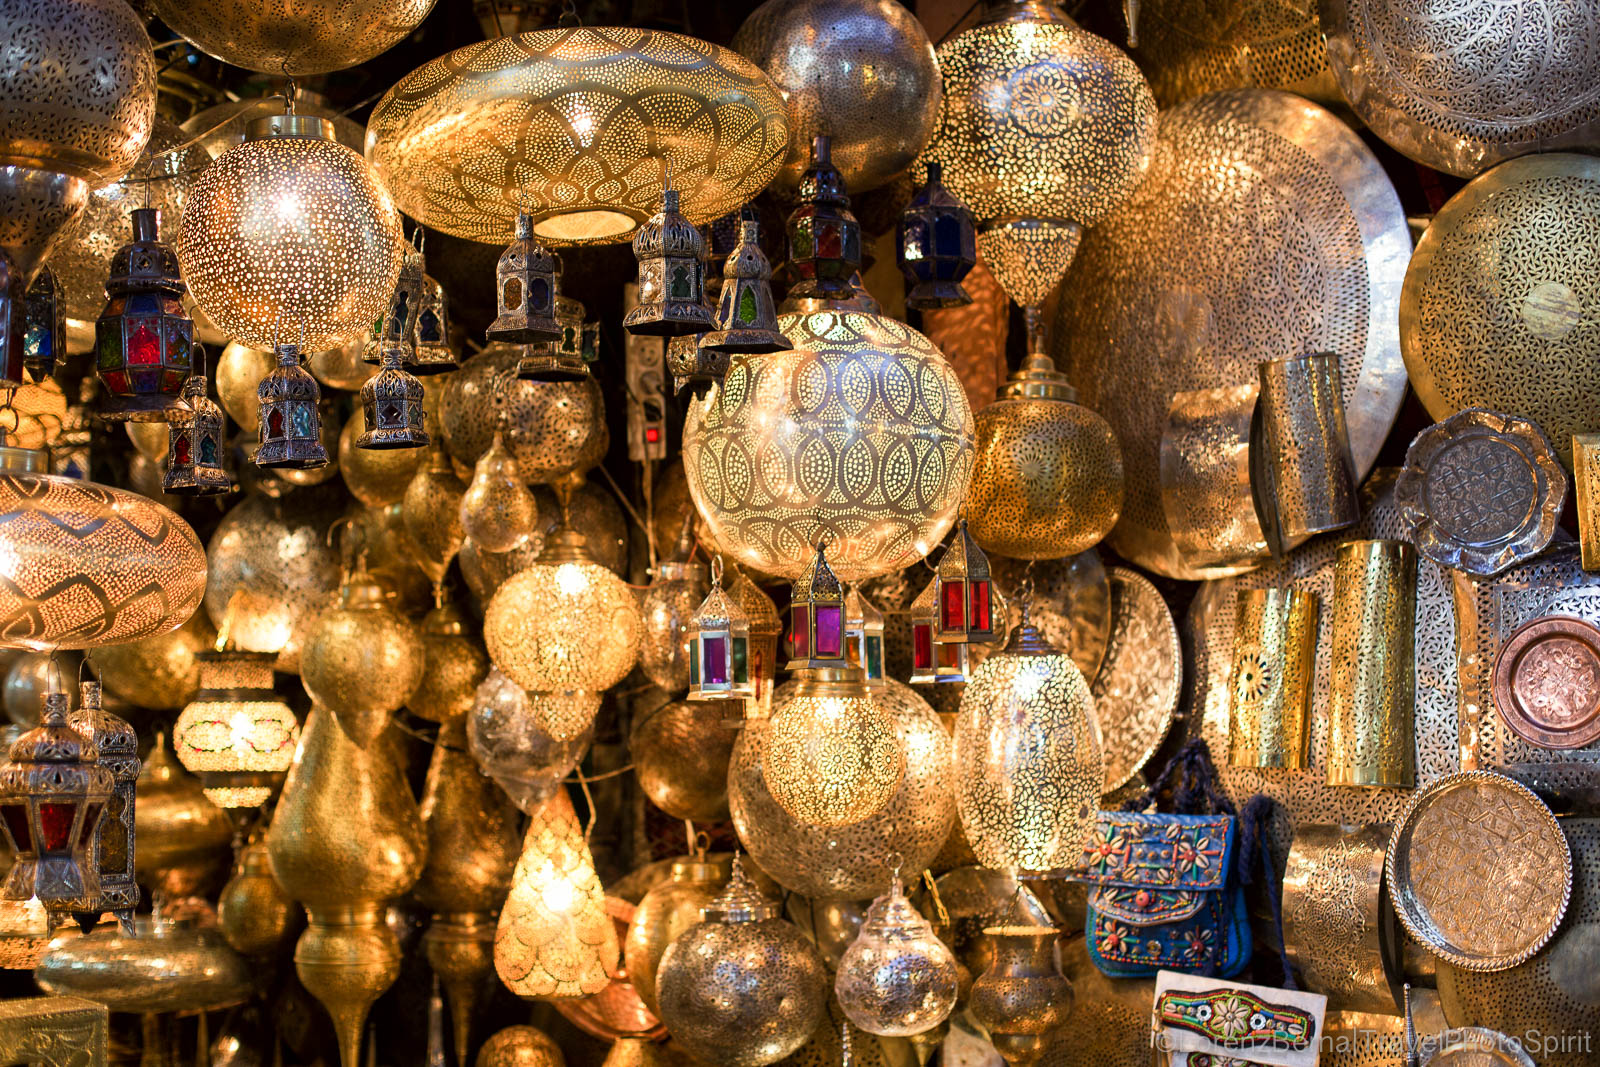 Moroccan handicraft objects found in the Medina of Marrakech, Morocco